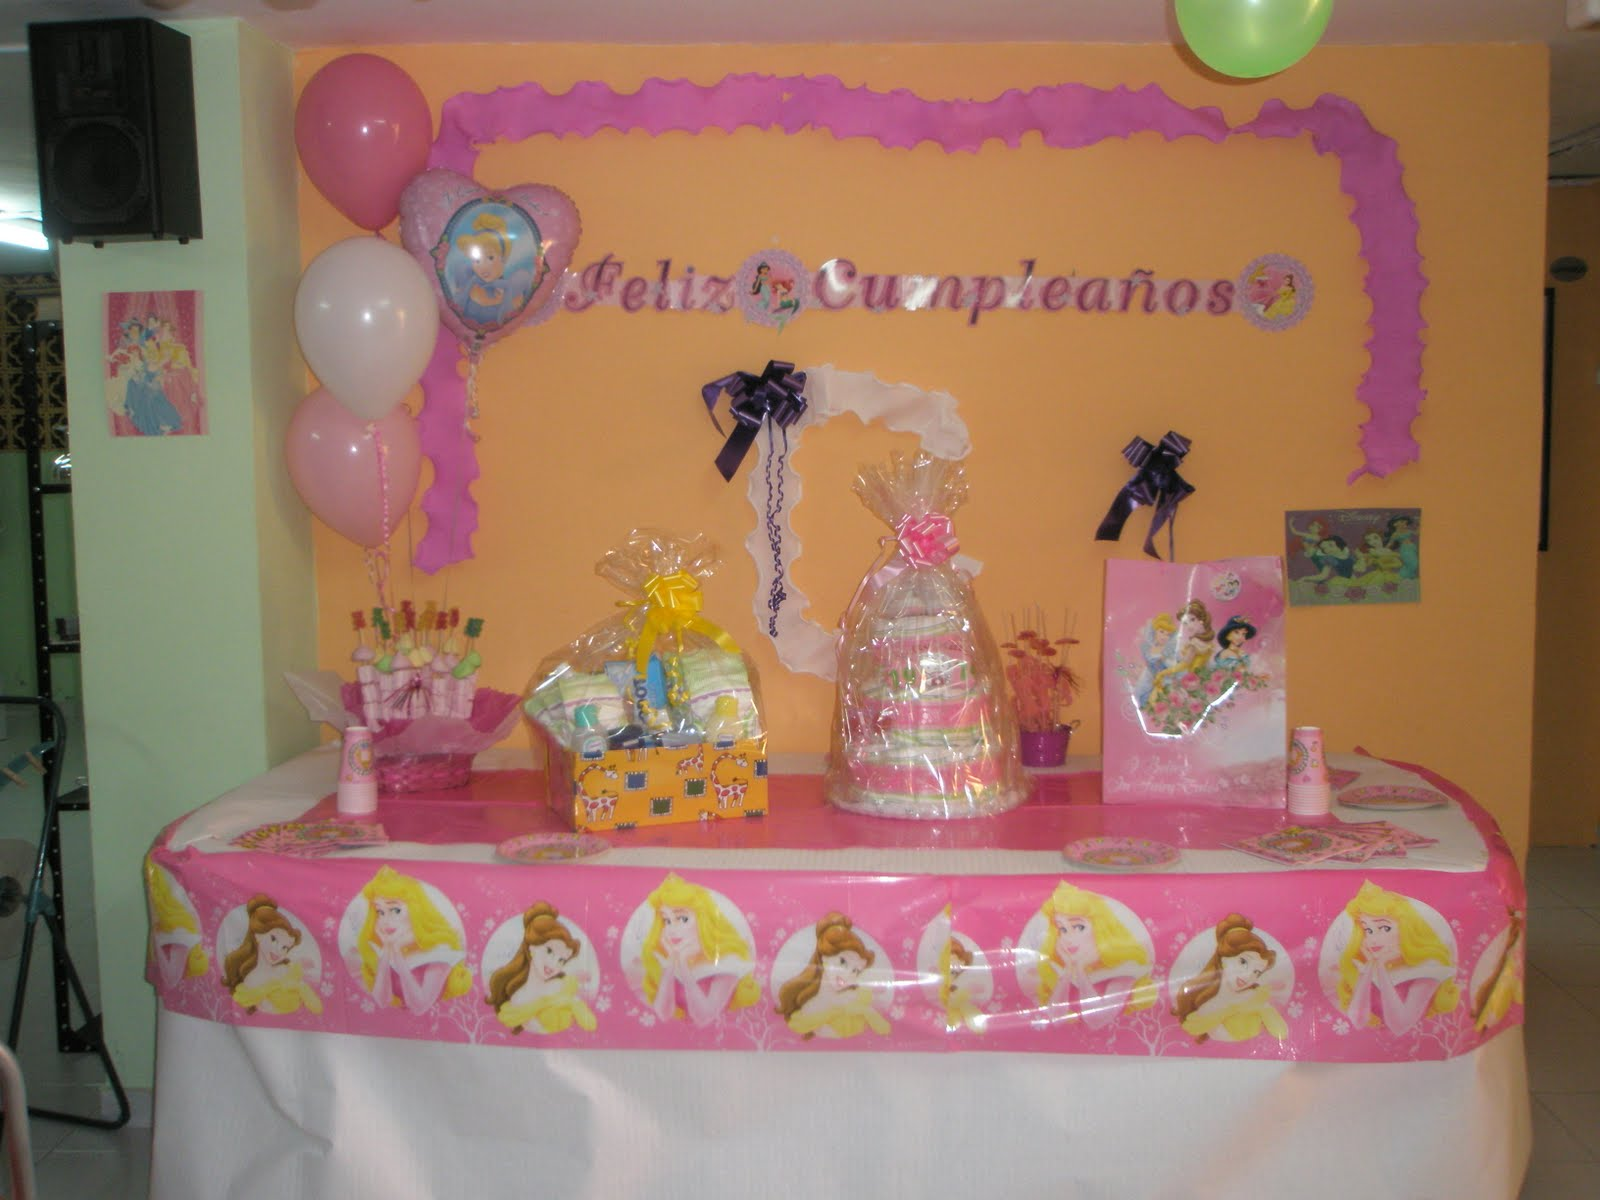 Decoracion de cumpleanos cake ideas and designs for Decoracion fiesta cumpleanos nina